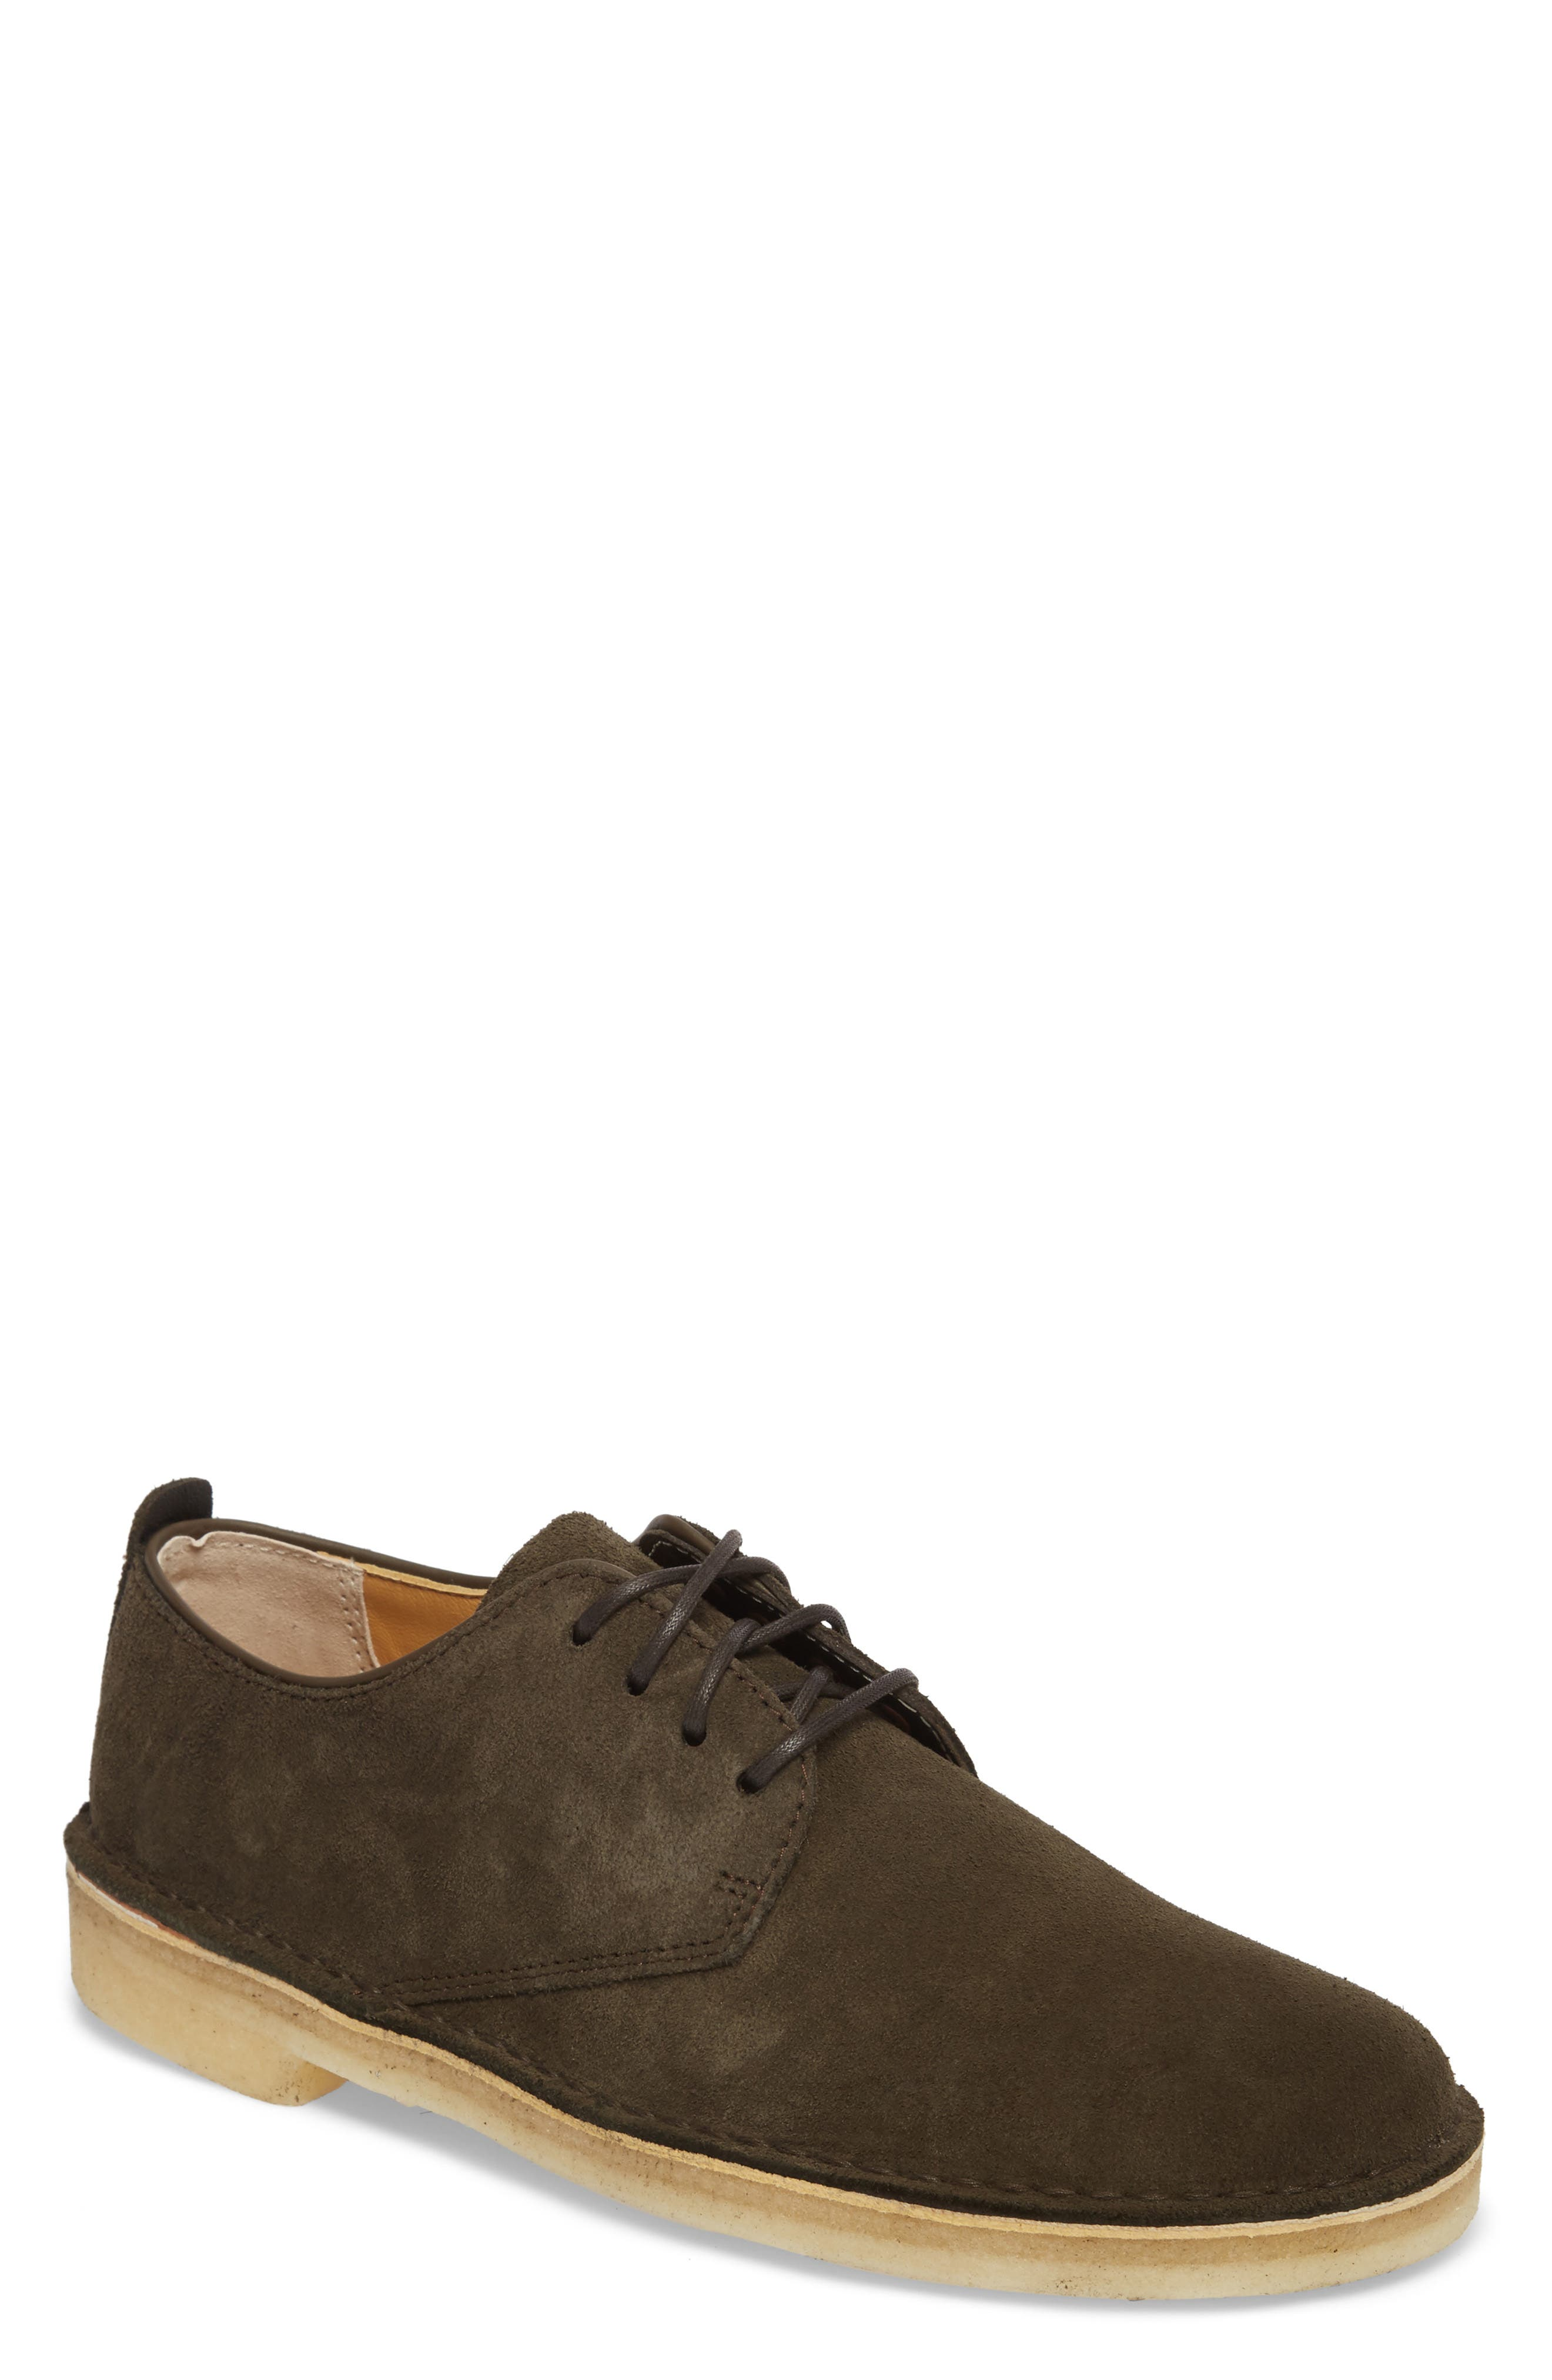 Desert London Suede Plain Toe Derby,                         Main,                         color, Peat Suede